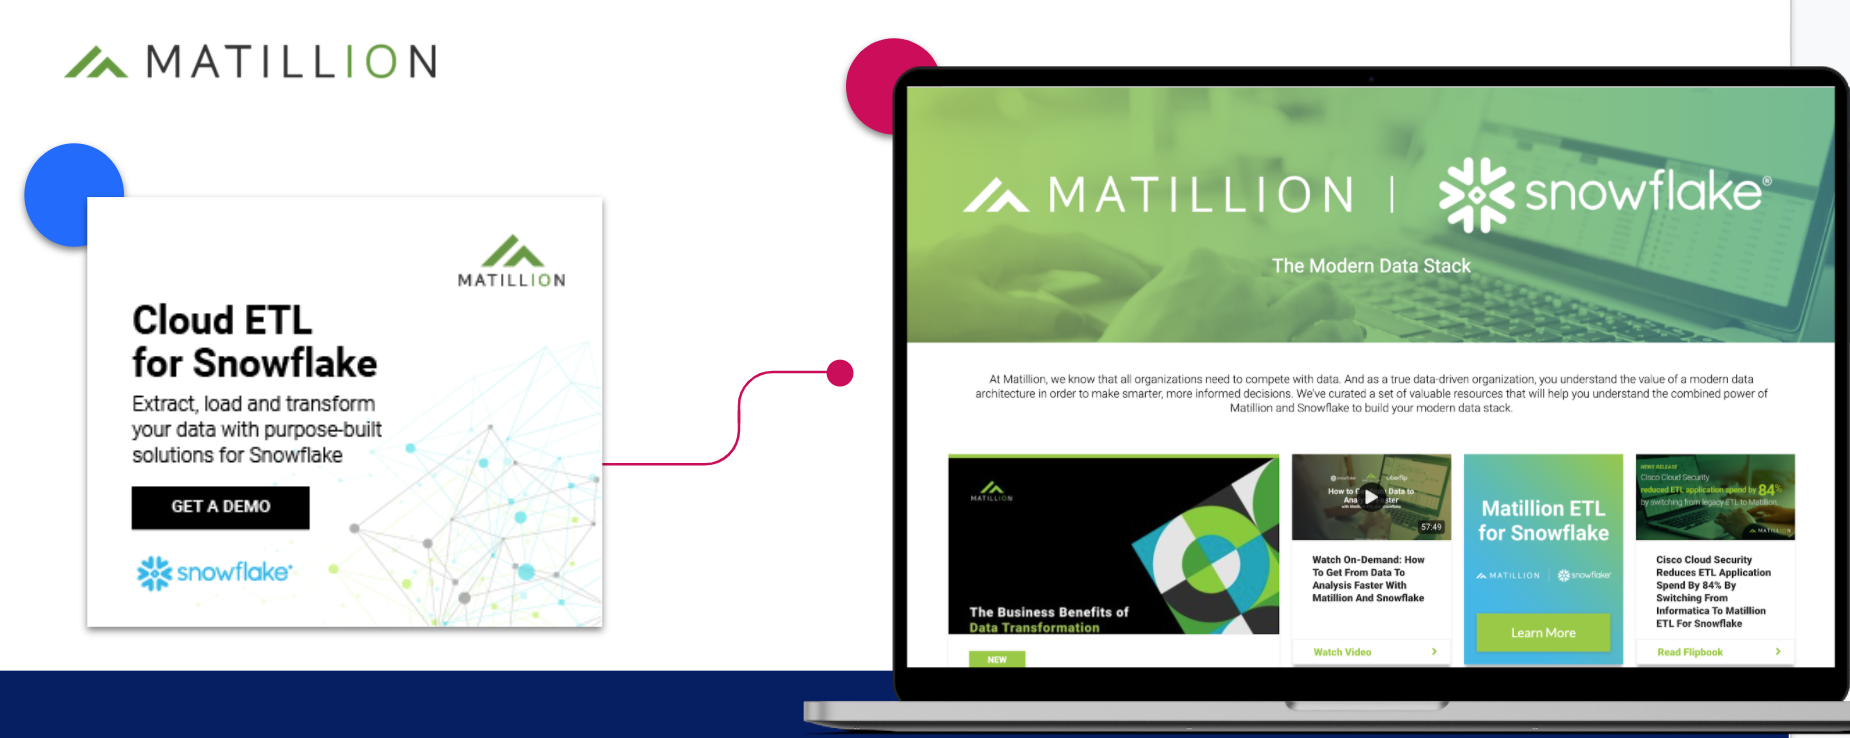 Matillion's digital ad and content destination from an ABM campaign